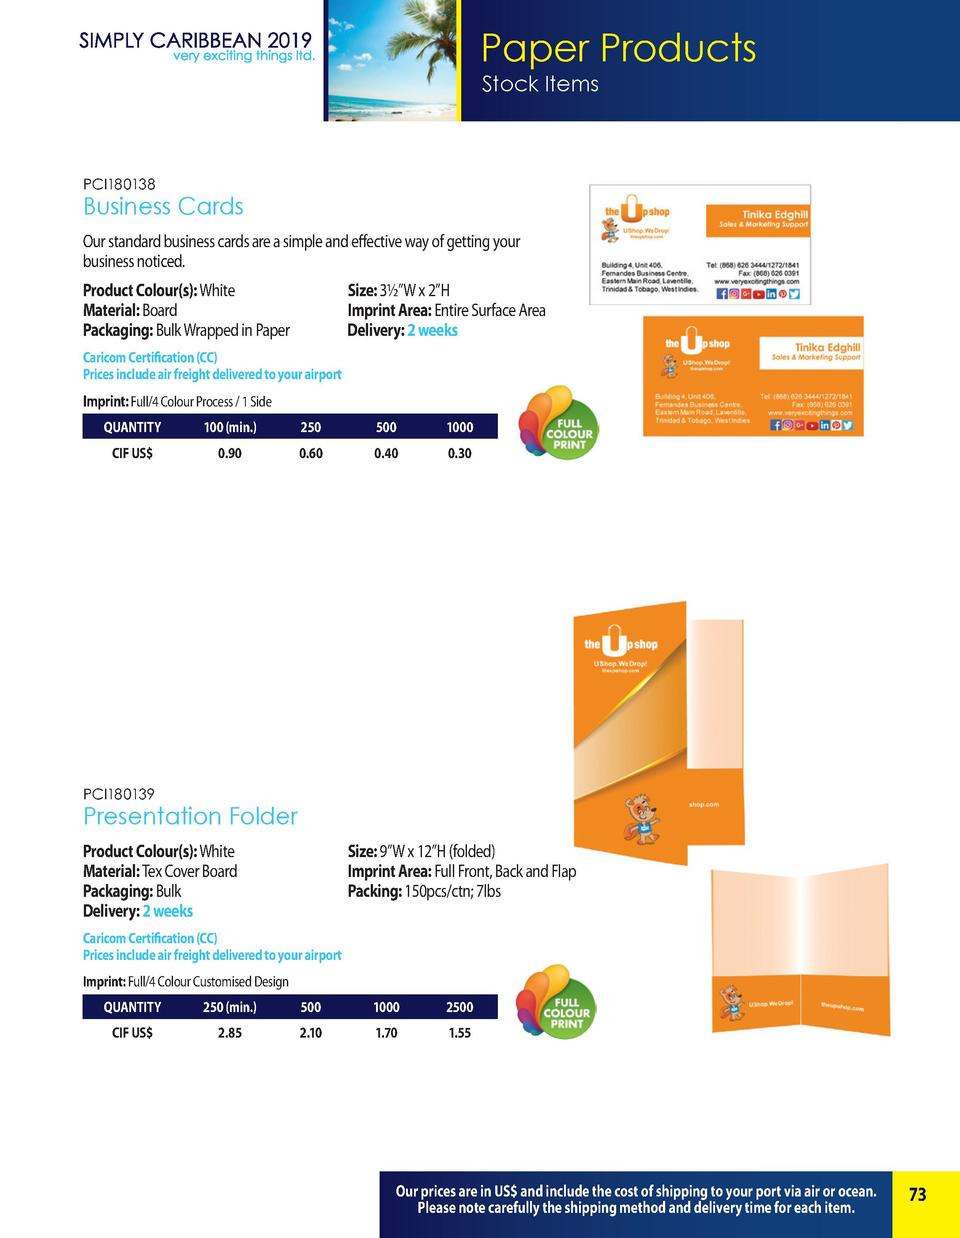 Paper Products Stock Items  PCI180138  Business Cards Our standard business cards are a simple and effective way of gettin...